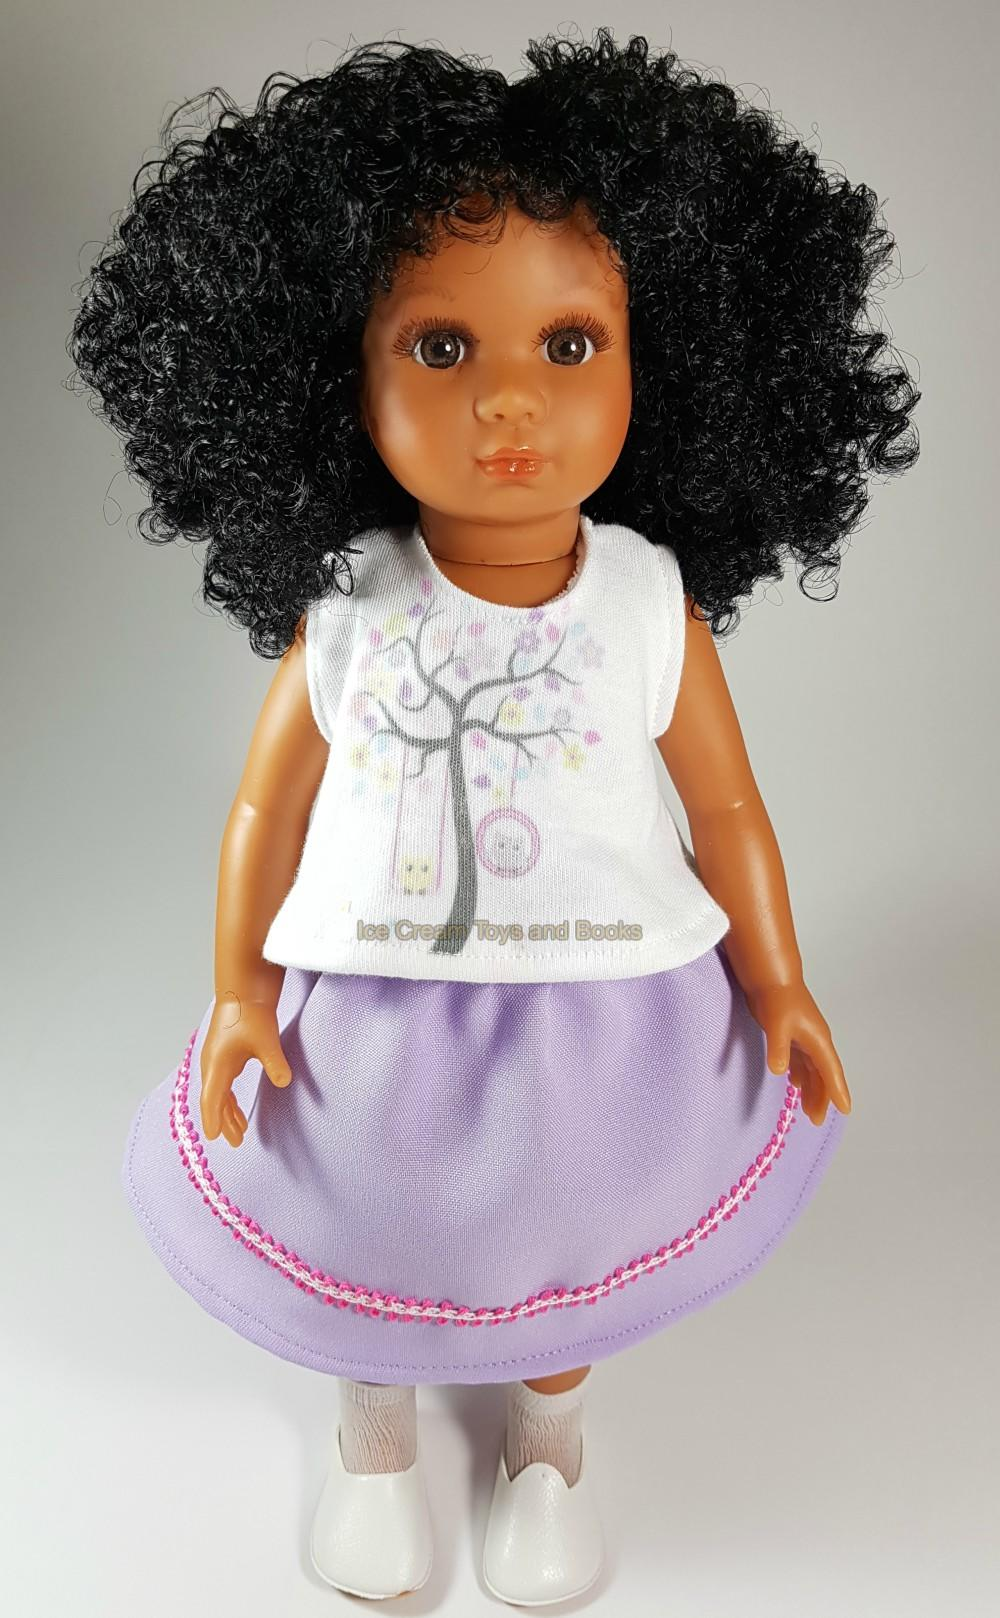 mixed race doll in a lilac skirt and white top